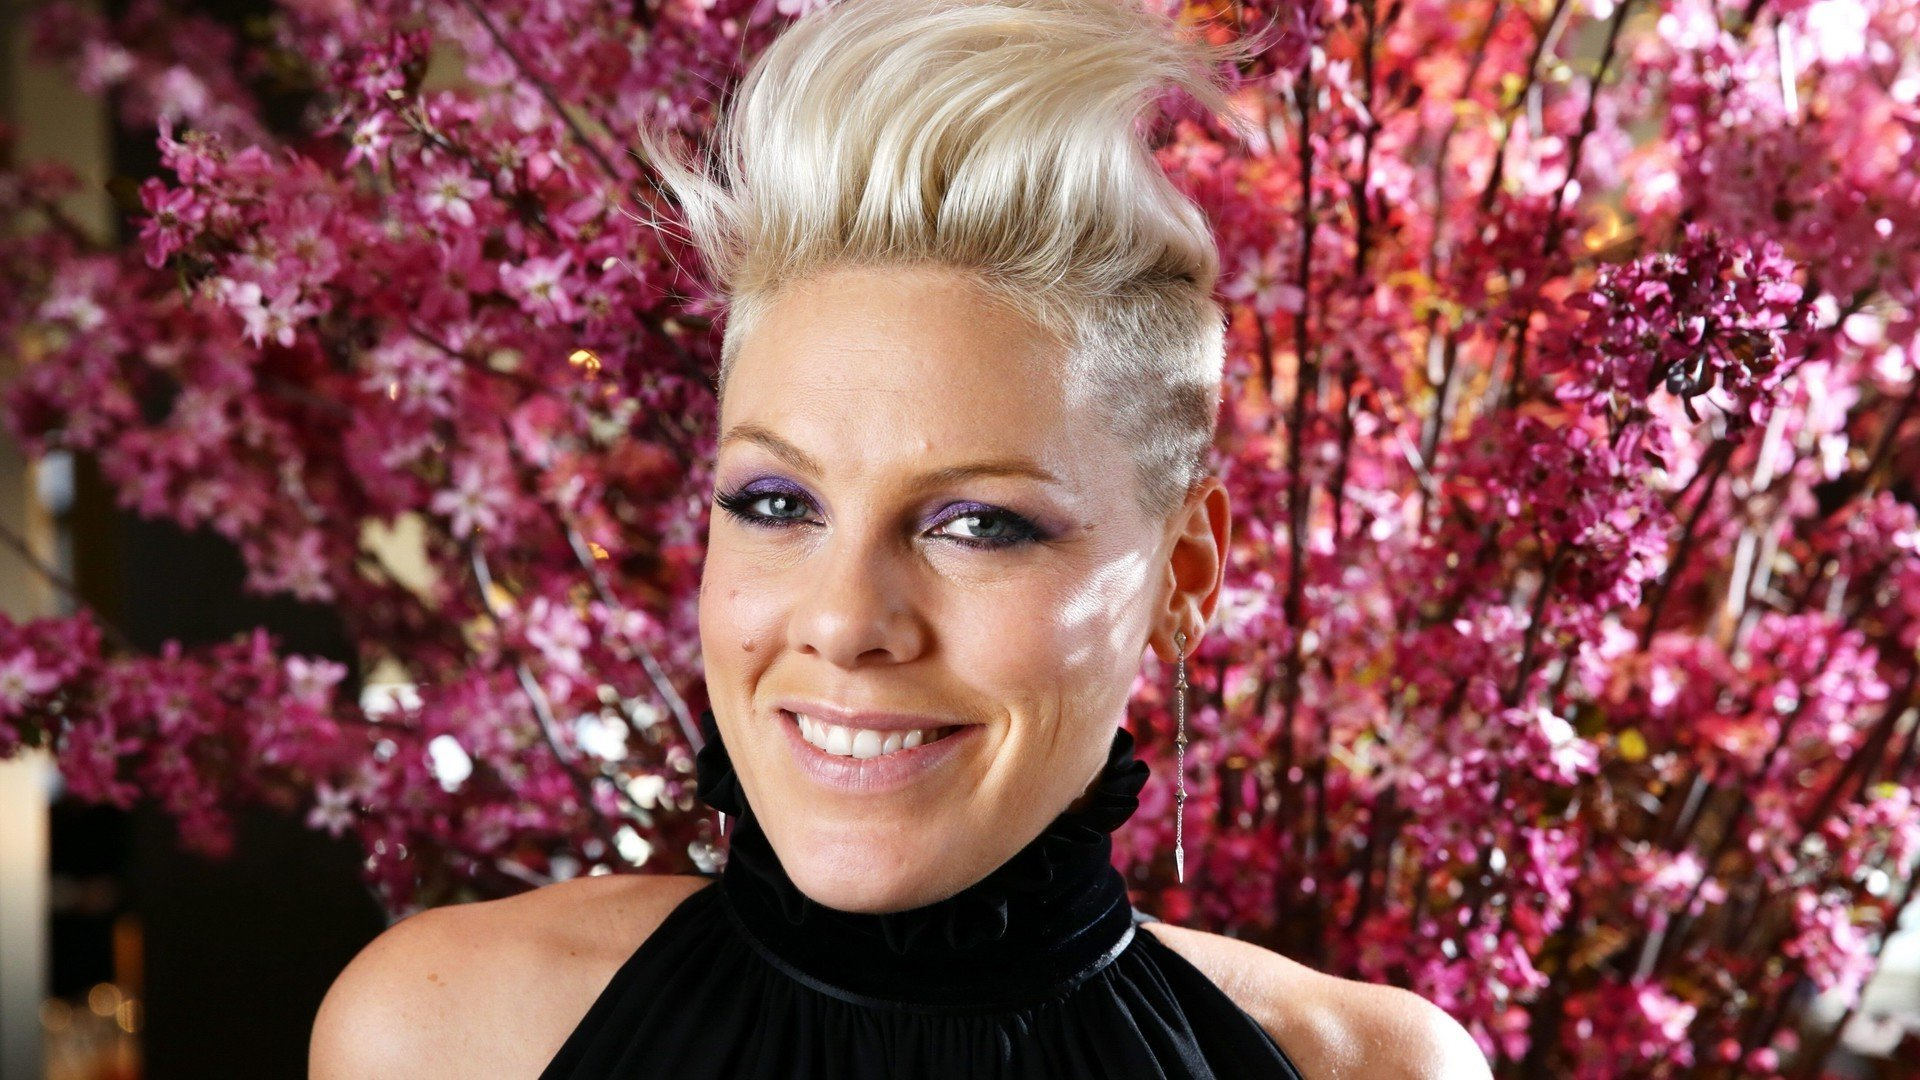 Free download Pink (singer) wallpaper ID:457300 full hd for desktop